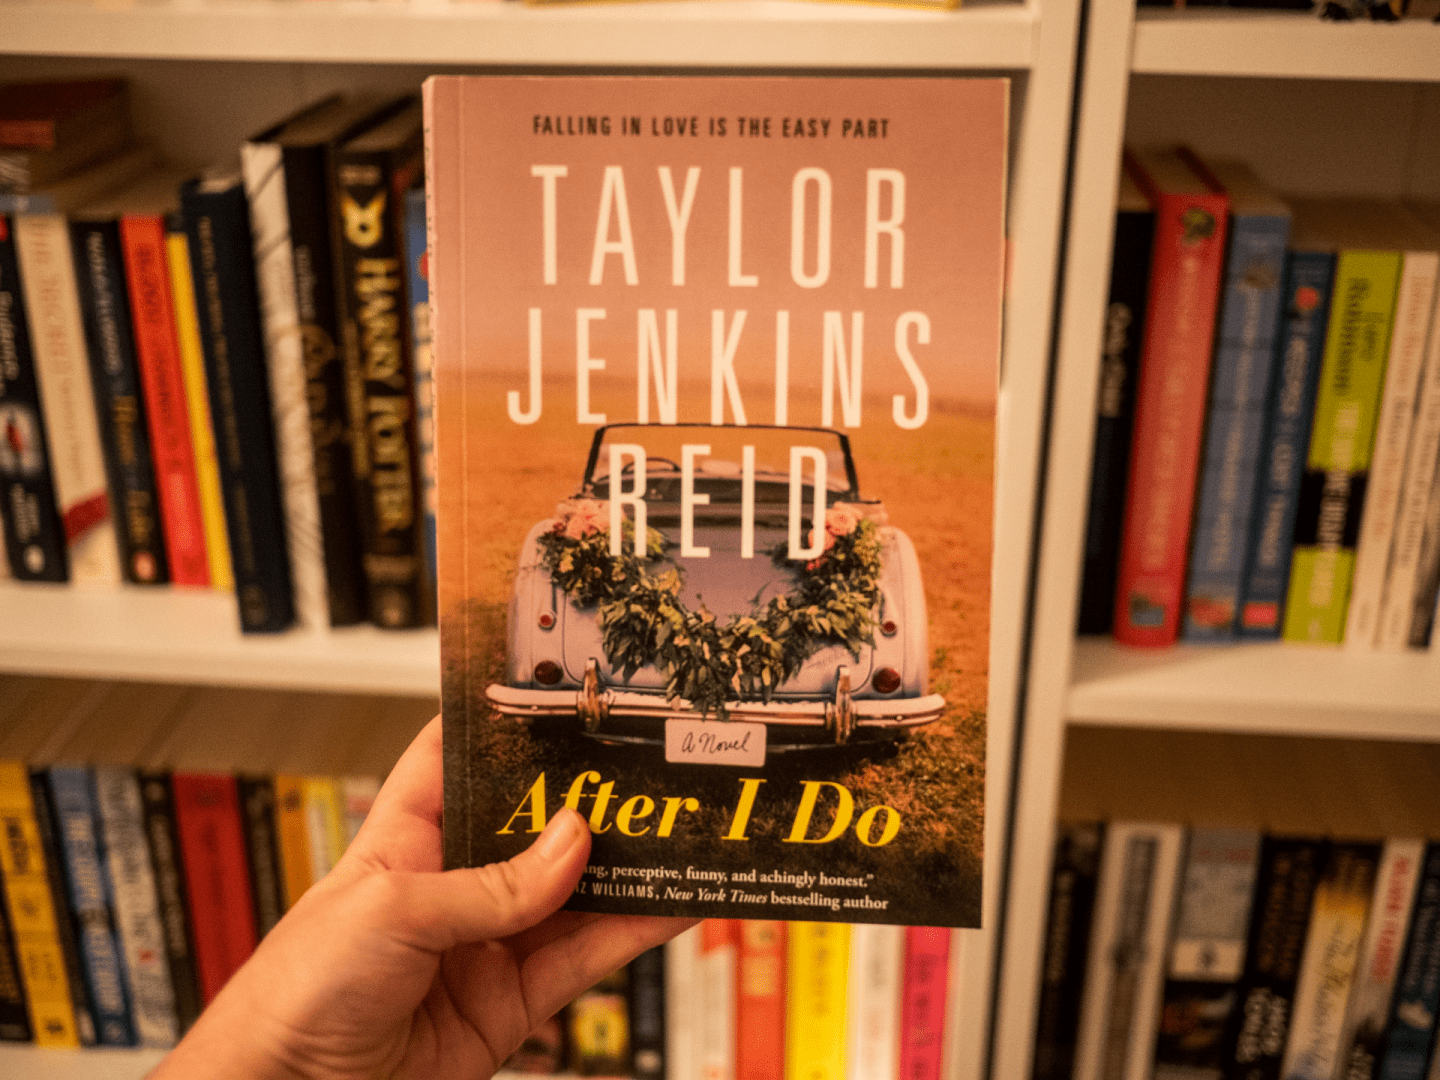 After I do by Taylor Jenkins Reid Book Review